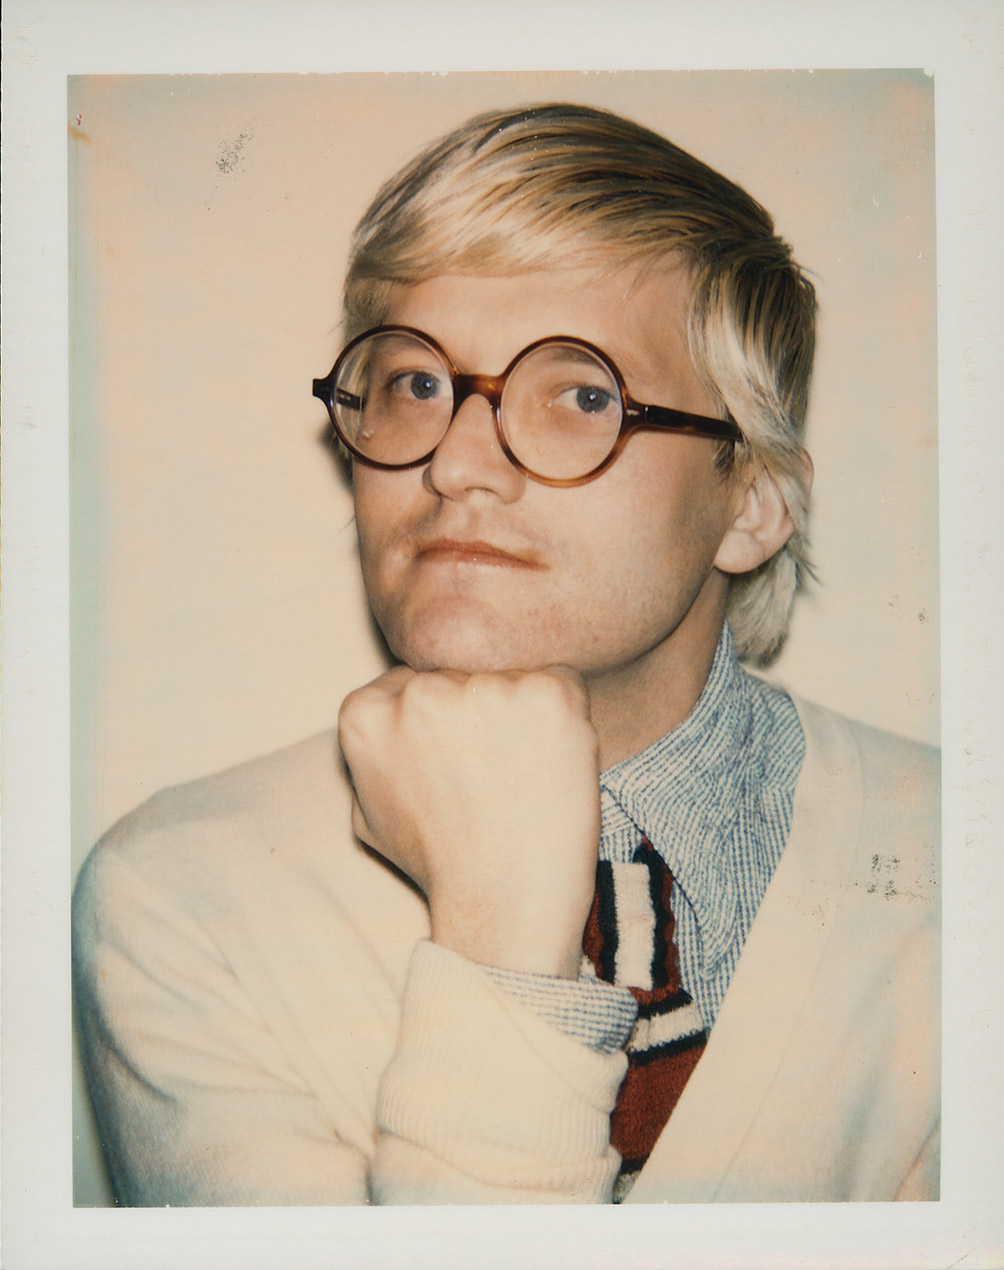 Sandra orlow facebook - David Hockney 1973 Andy Warhol The Andy Warhol Foundation For The Visual Arts Inc All Rights